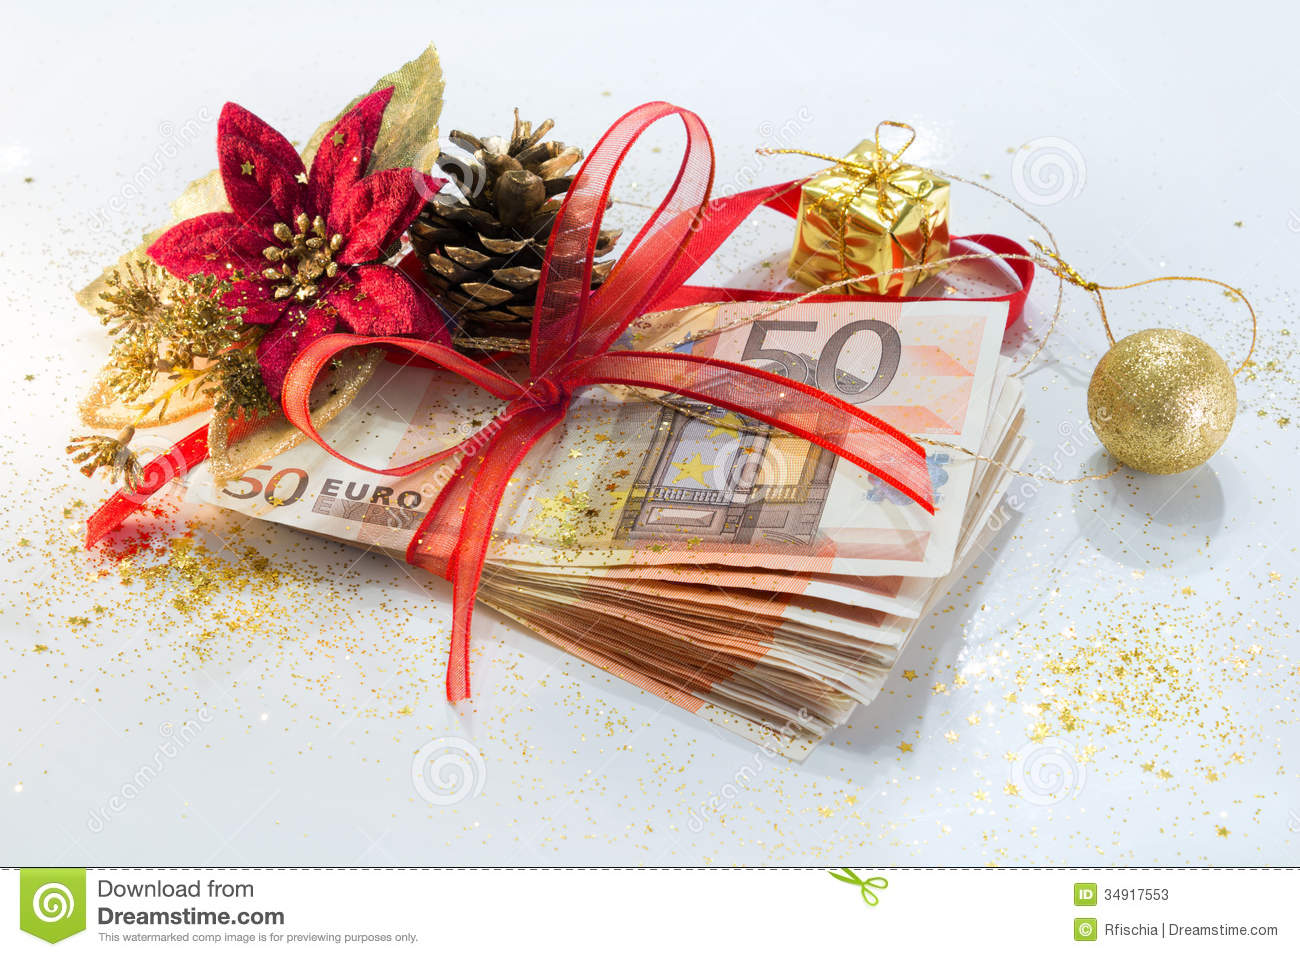 Euro Package For Gift Christmas Stock Image - Image of earning ...